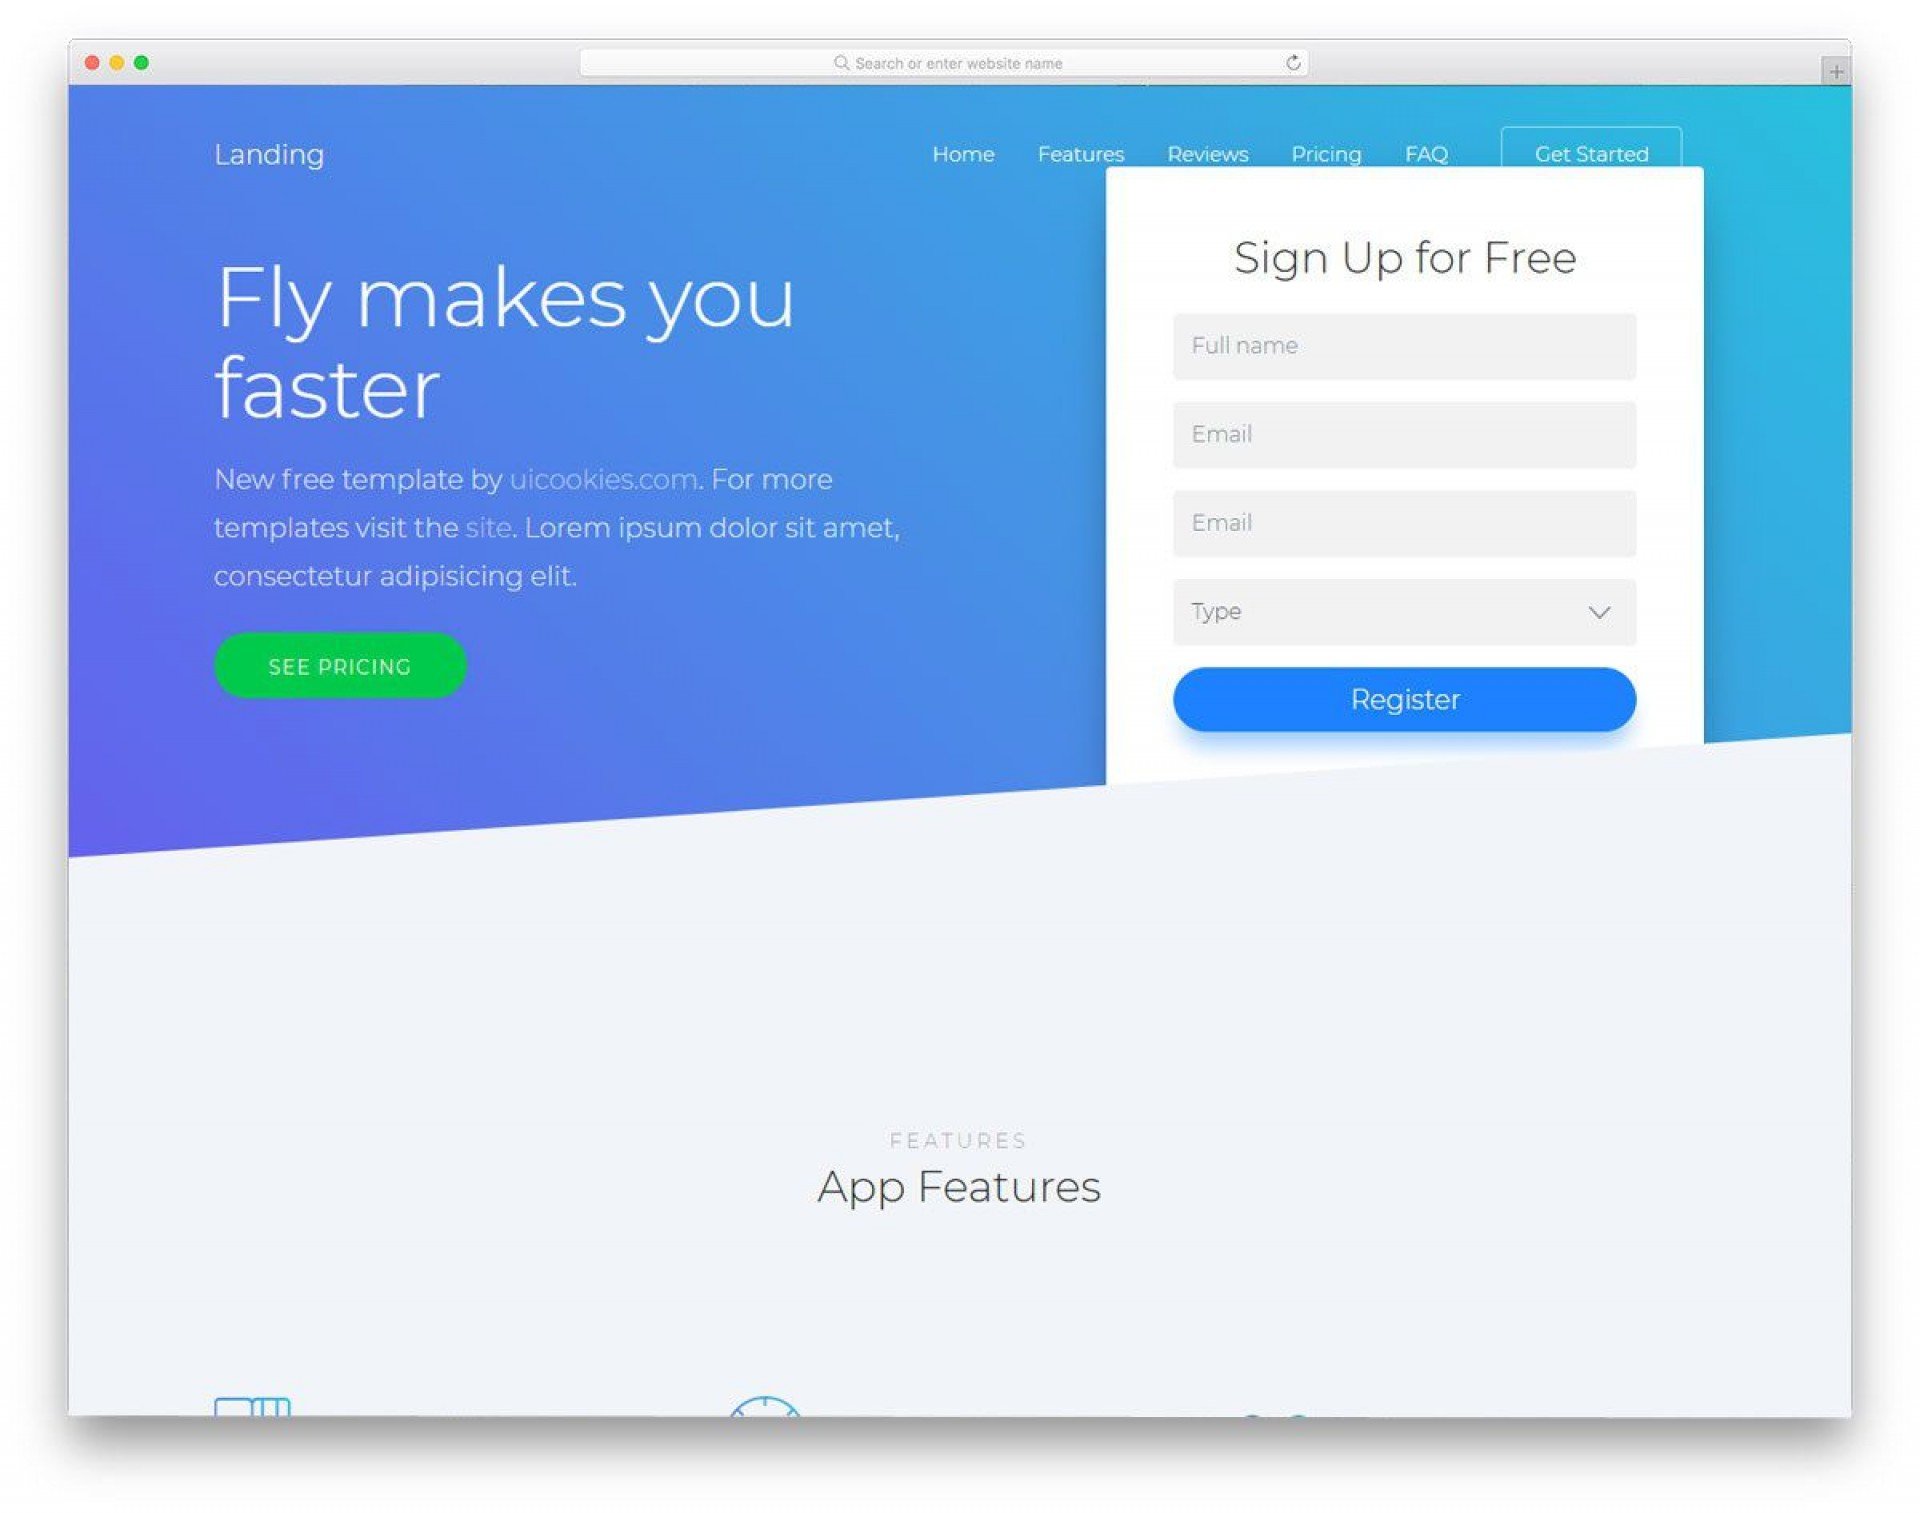 007 Fascinating Free Landing Page Template Bootstrap High Definition  3 Html5 20191920